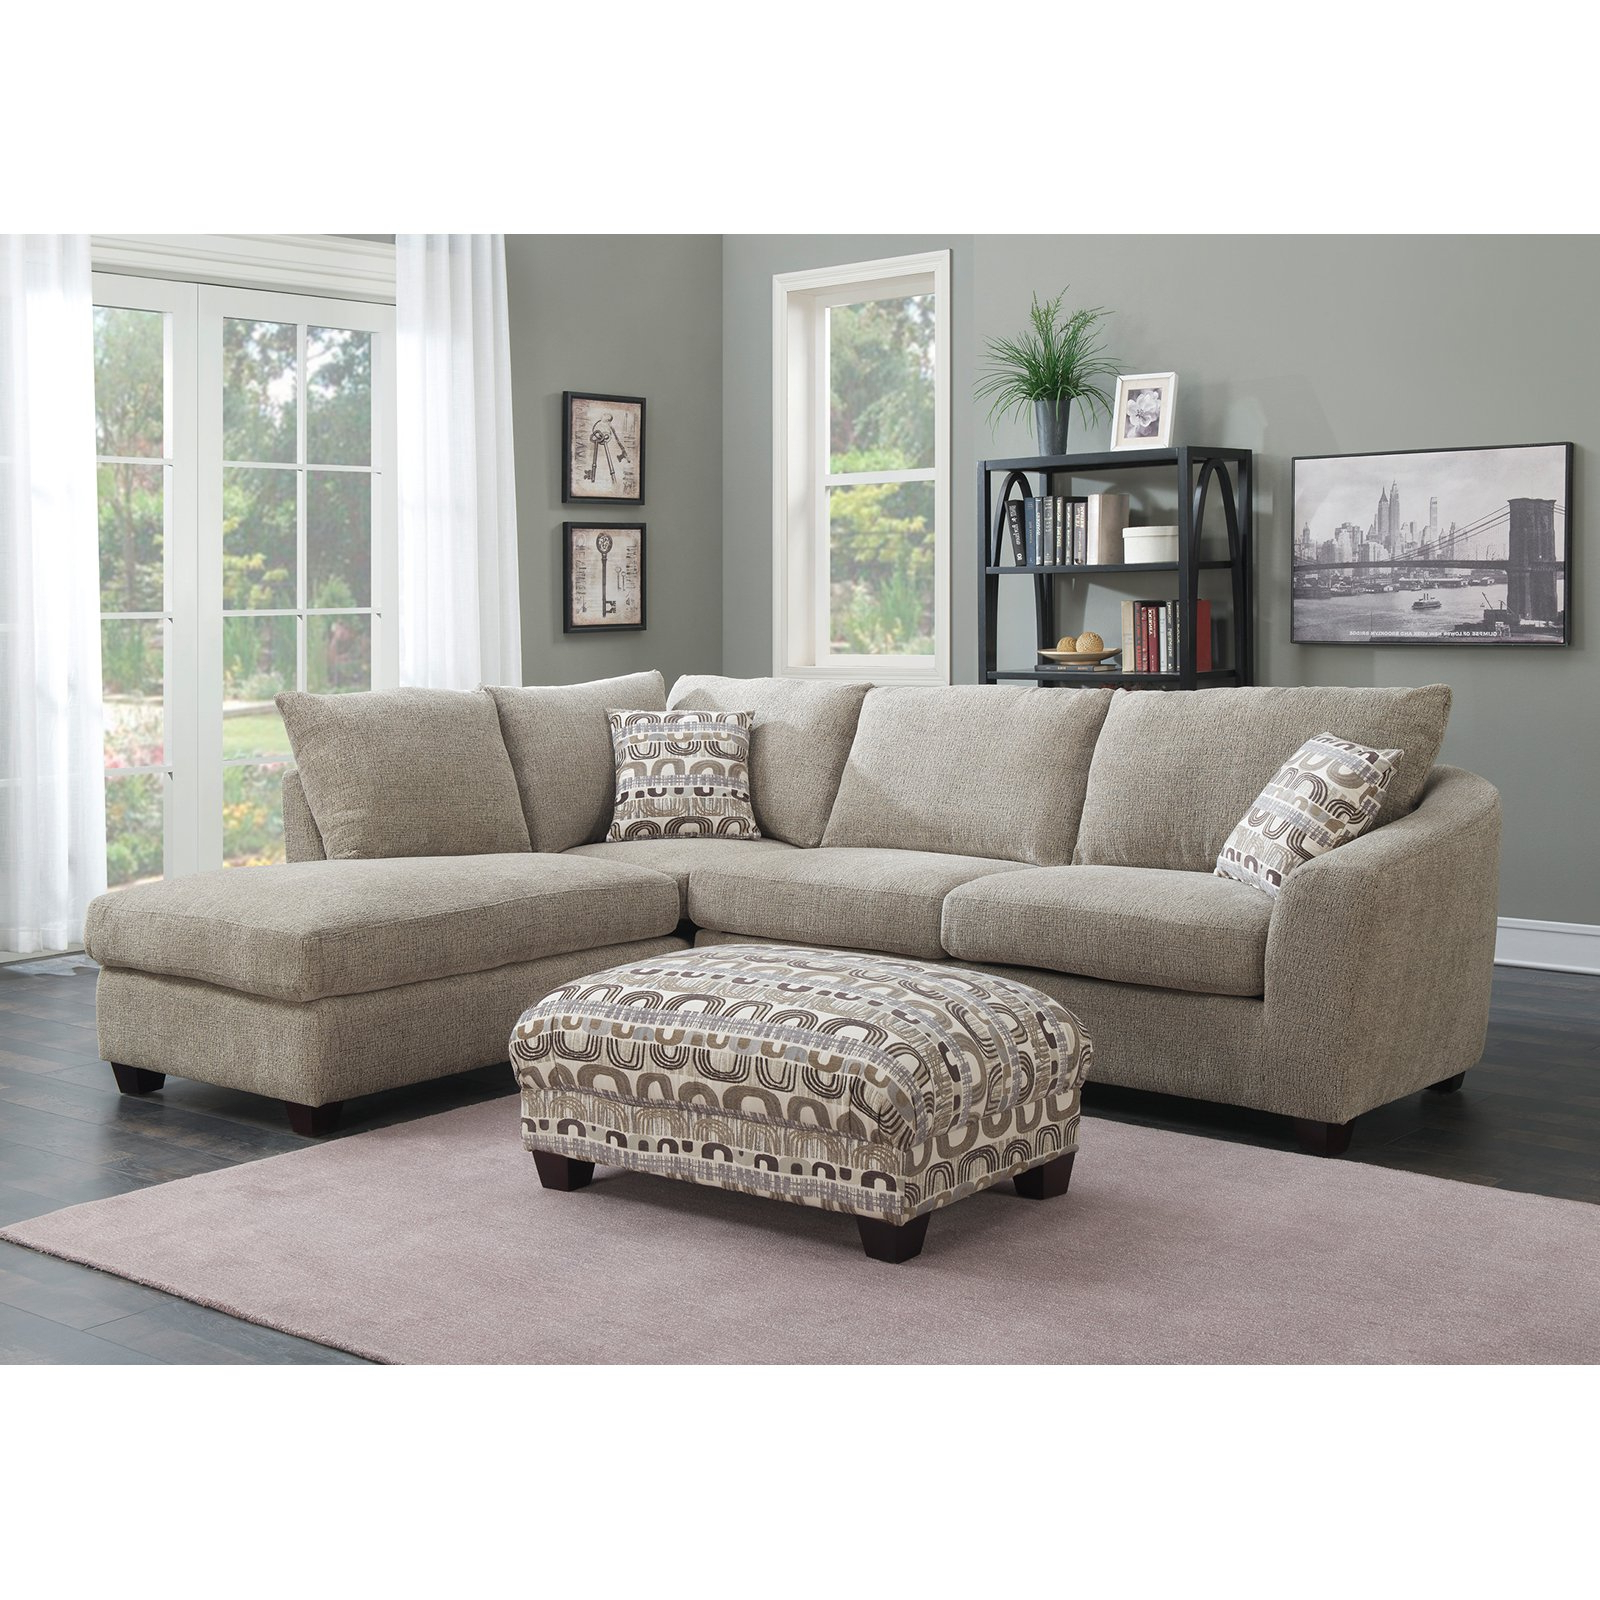 Arrowmask 2 Piece Sectionals With Laf Chaise Inside Trendy 2 Piece Sectional With Chaise – Tidex (Gallery 5 of 20)